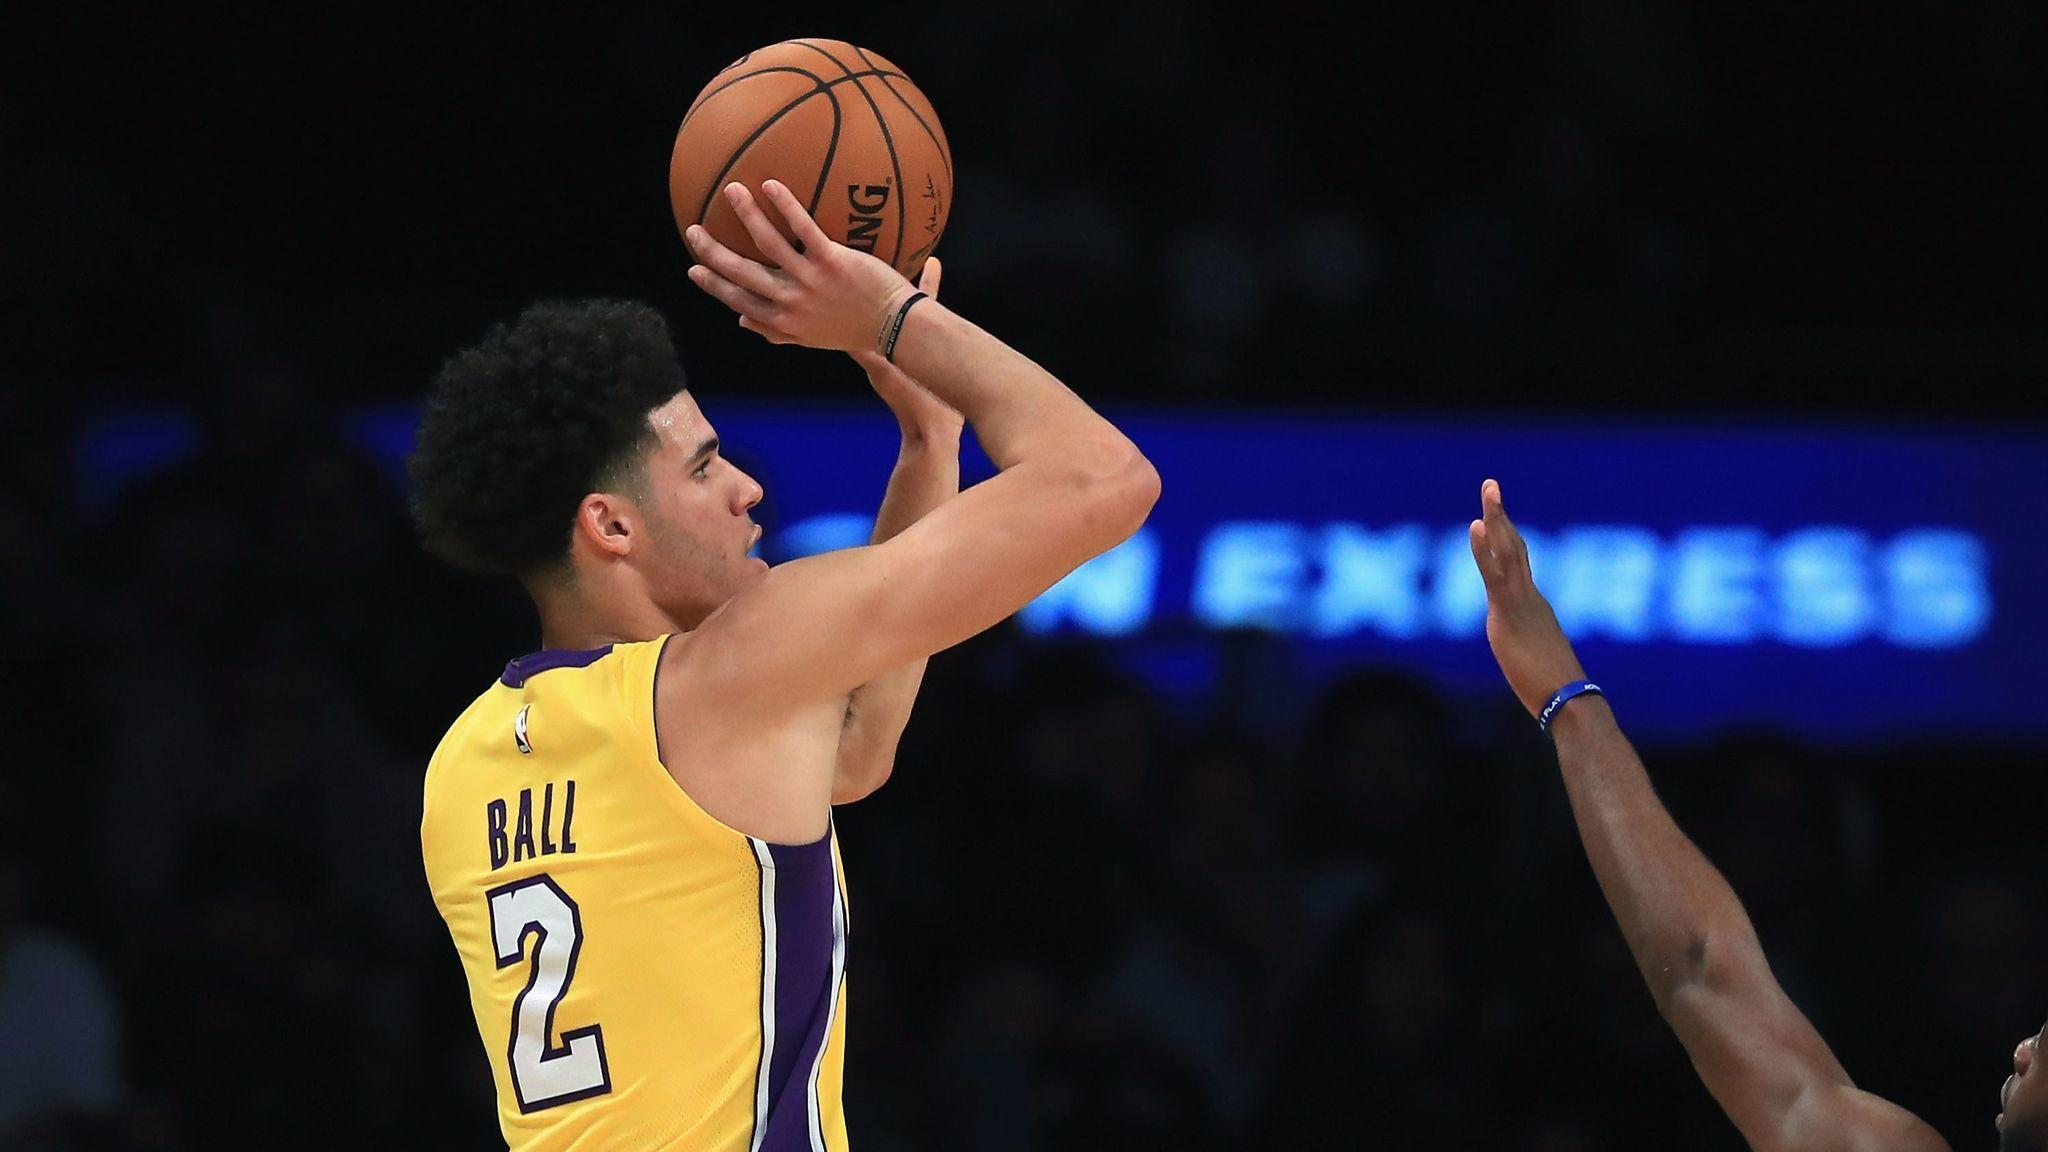 La-sp-lakers-ball-not-playing-20171013